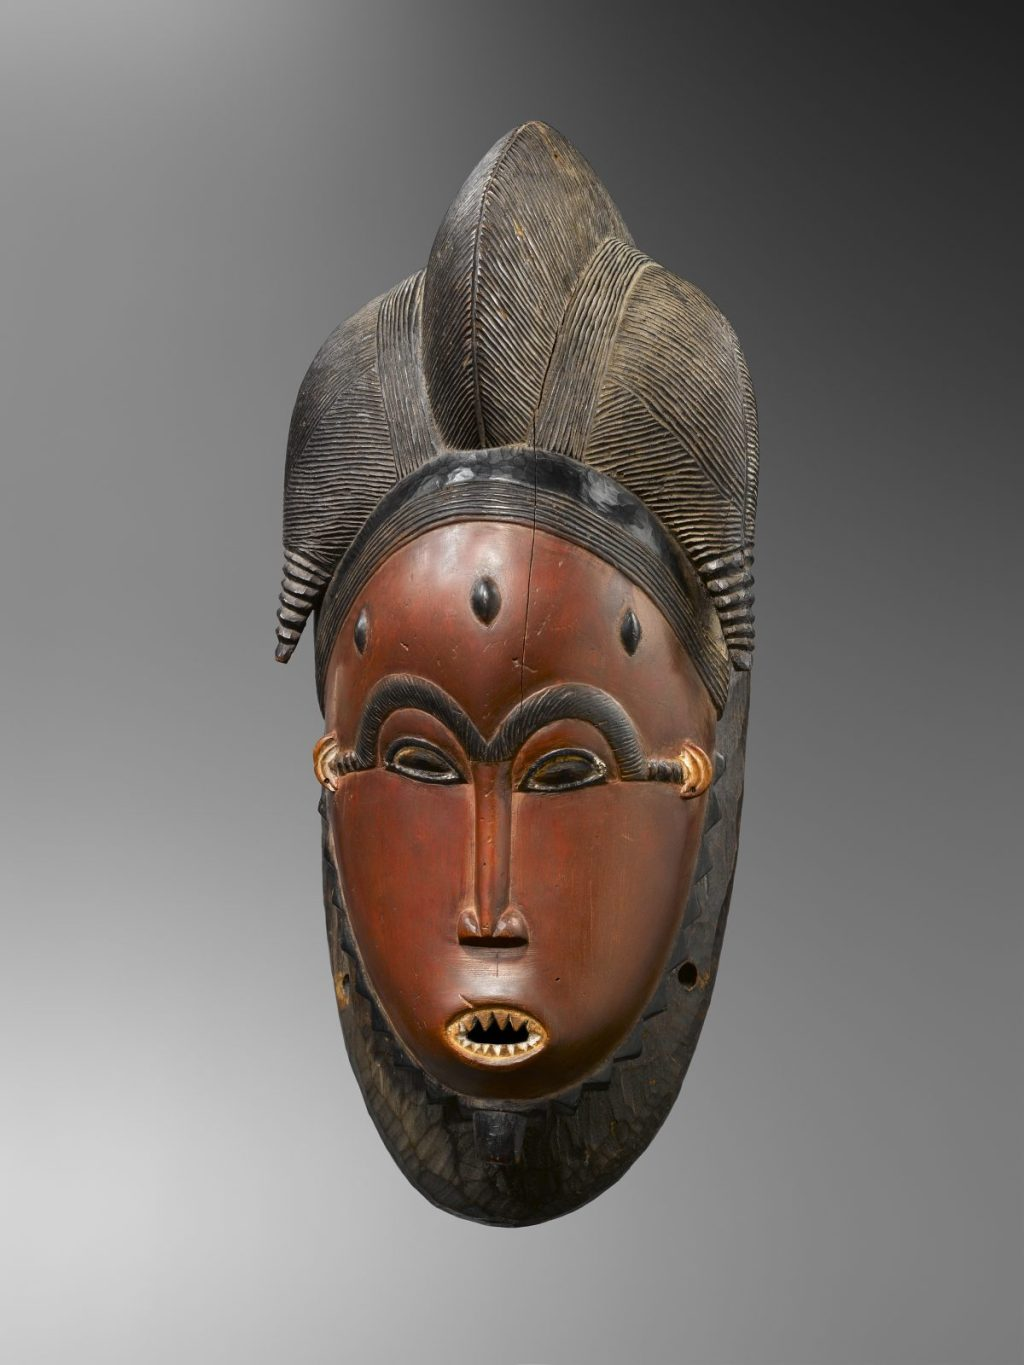 Long-Running Fairs Focused on African, Oceanic, and Indigenous Art Move Online